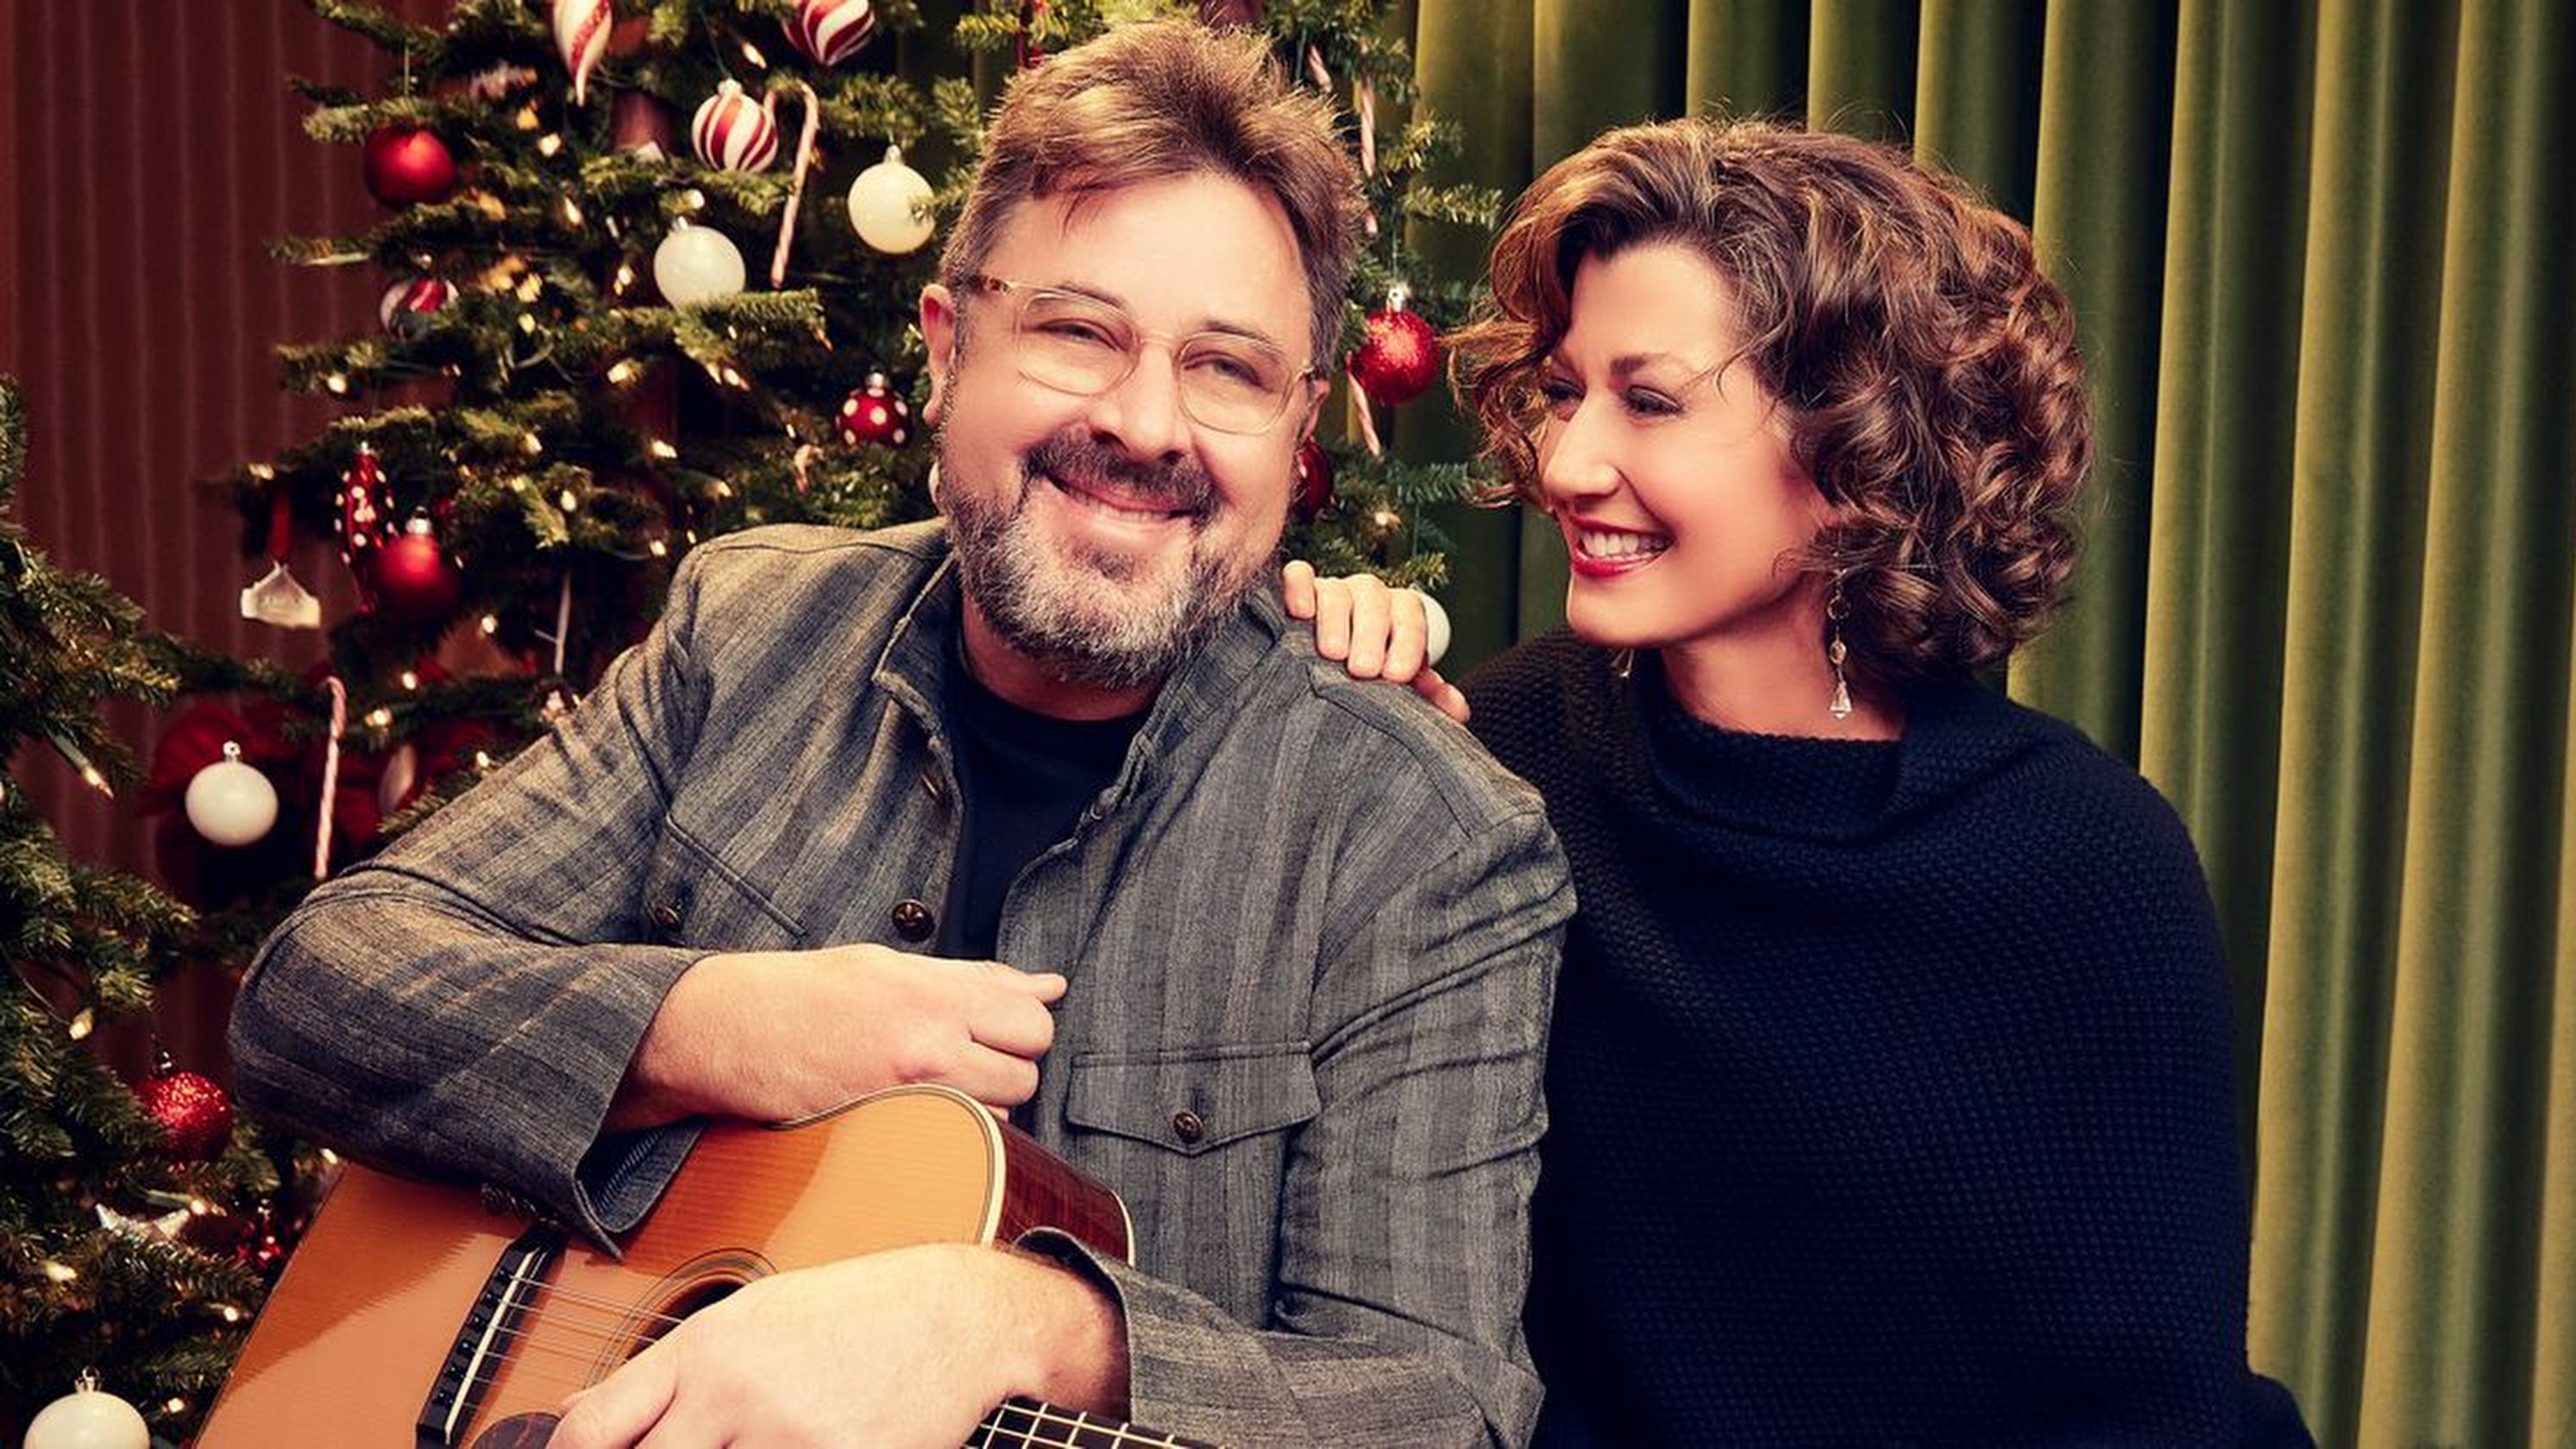 Nashville Christmas concerts: 29 shows to catch this month